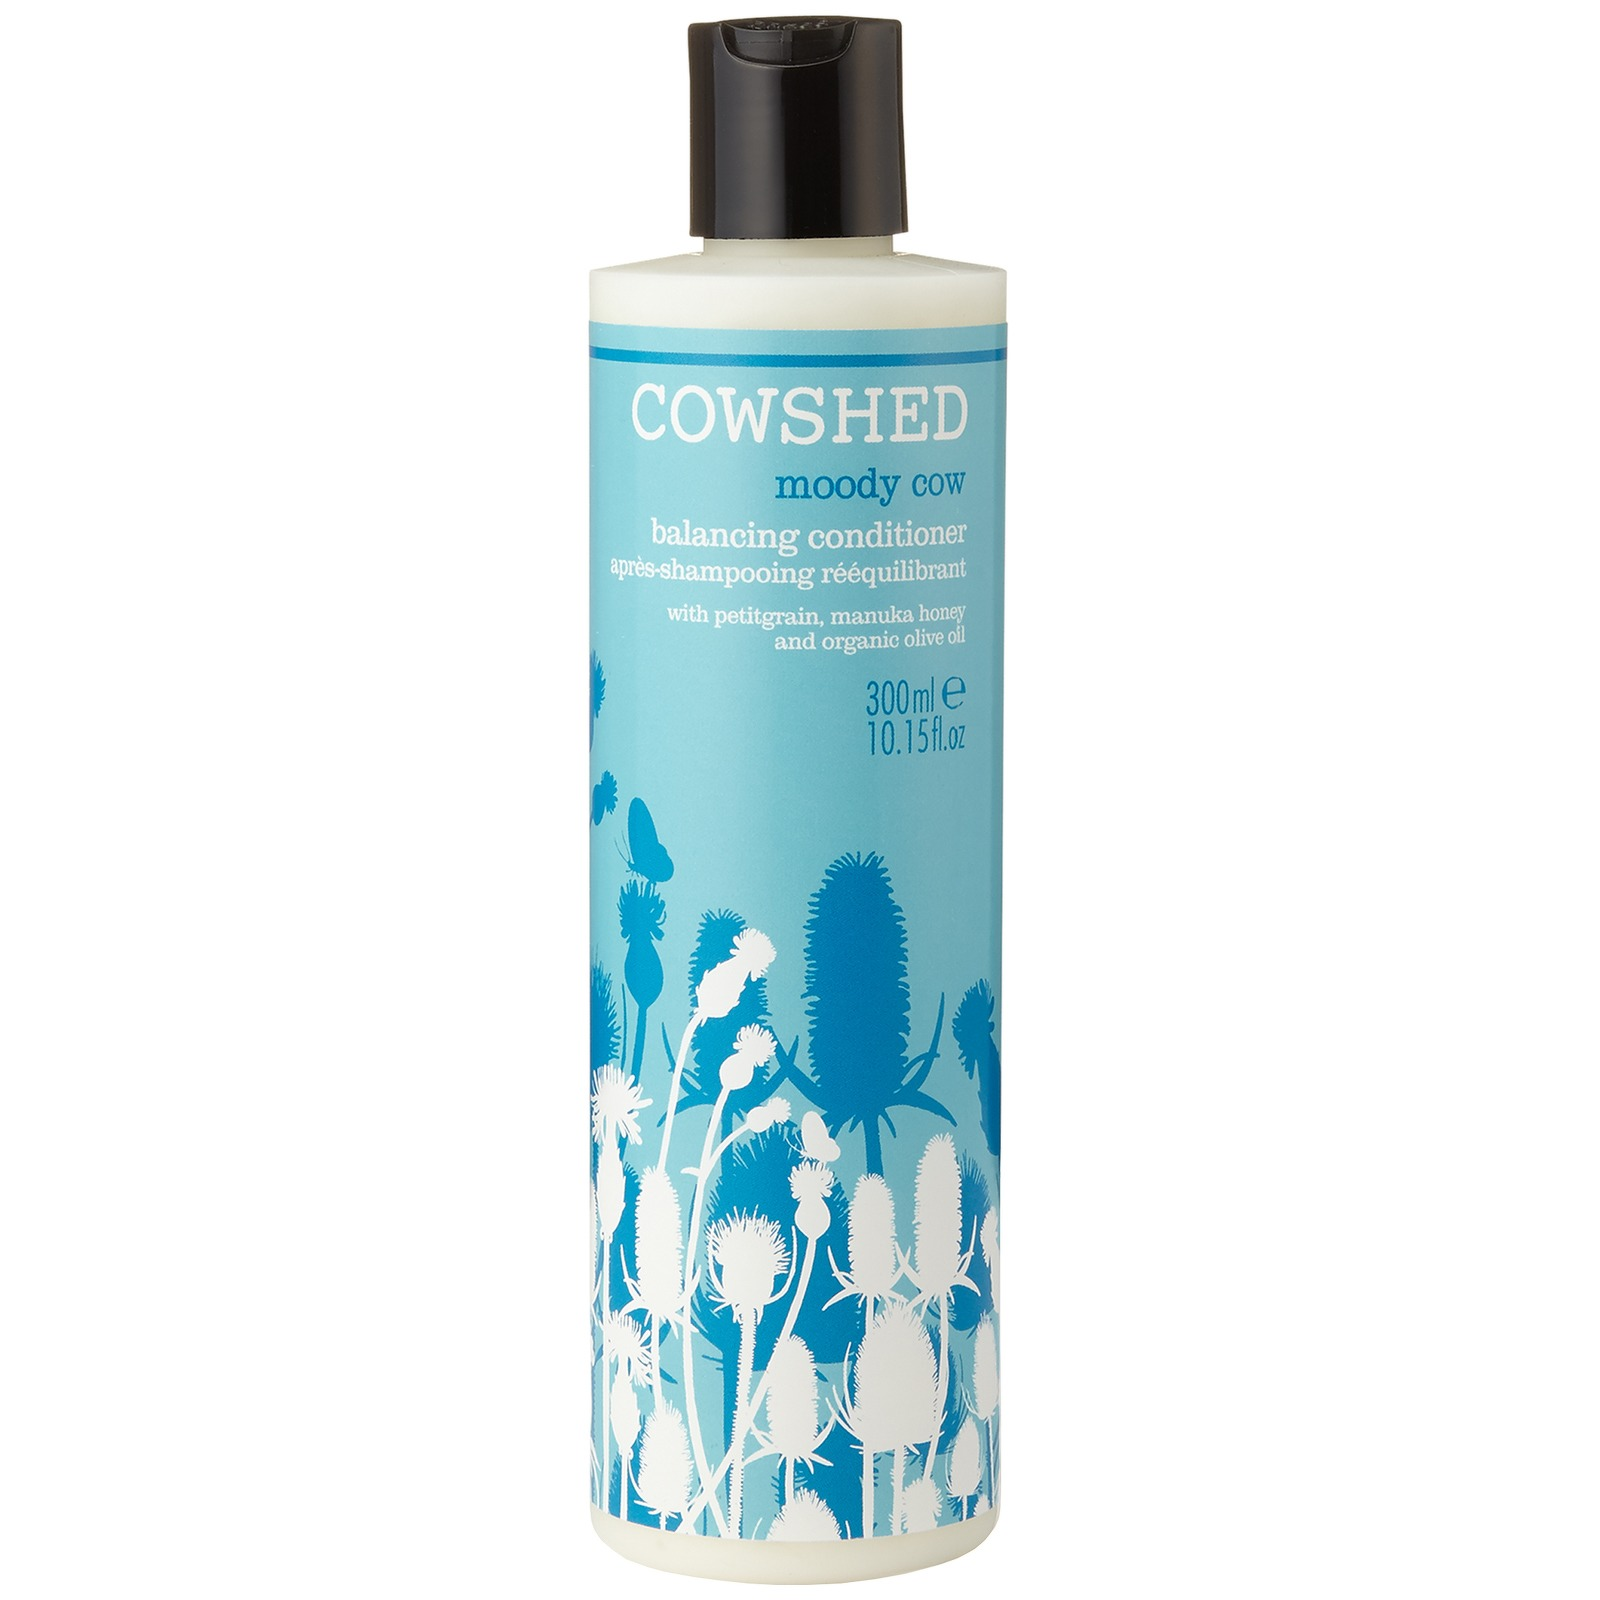 Cowshed Haircare Moody Cow Balancing Conditioner 300ml